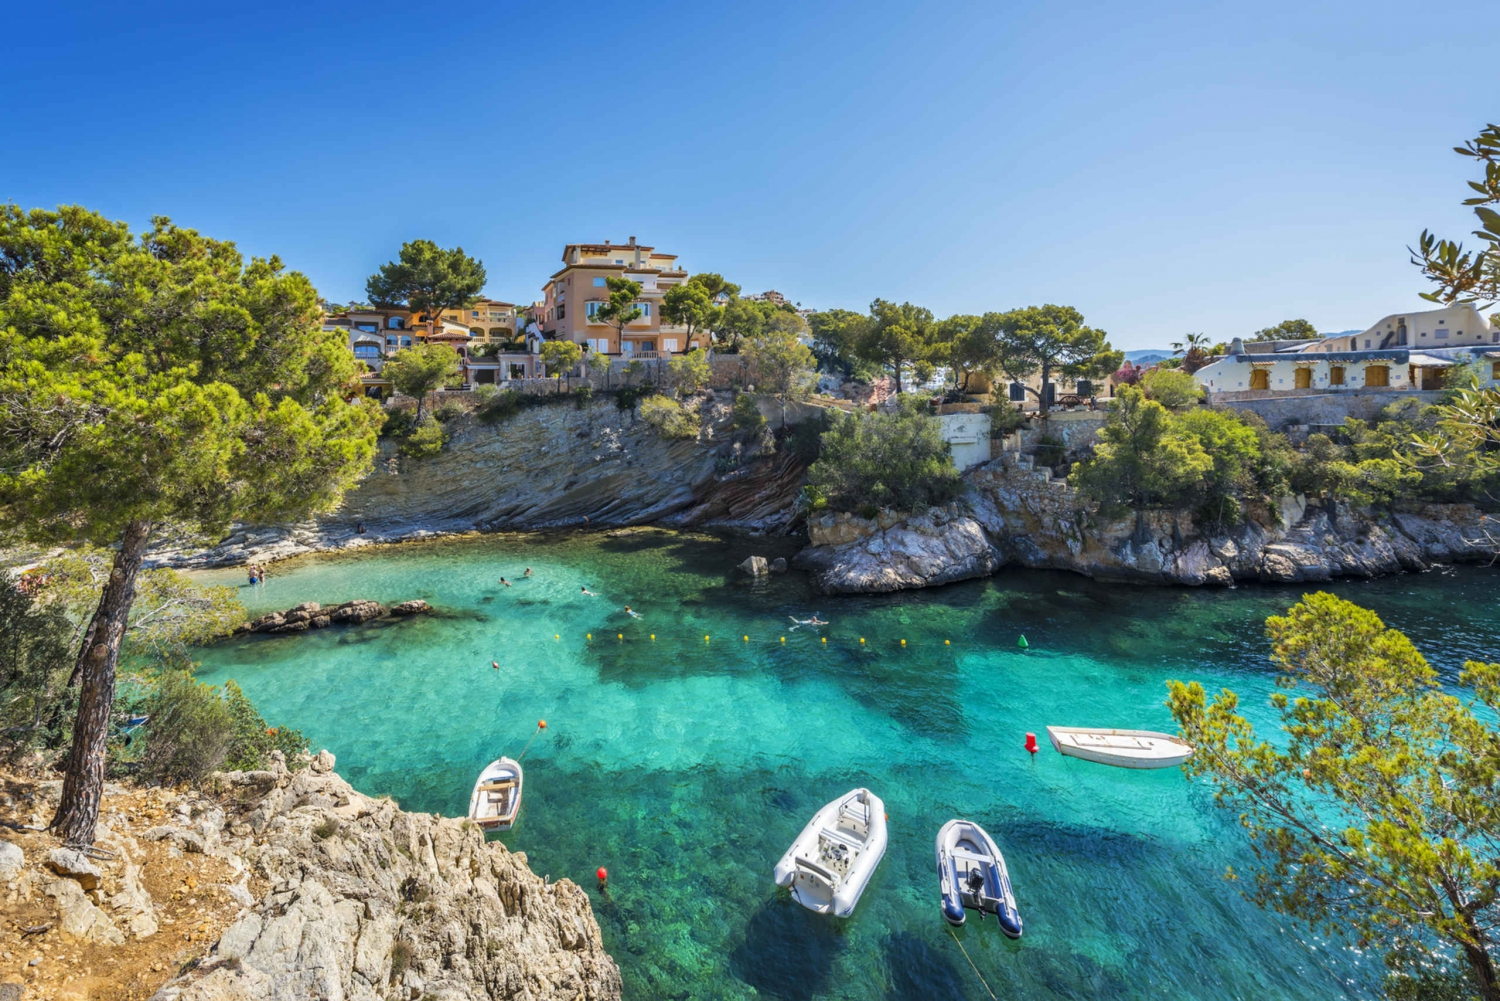 Caves, Cliffs and Coves Boat Cruise